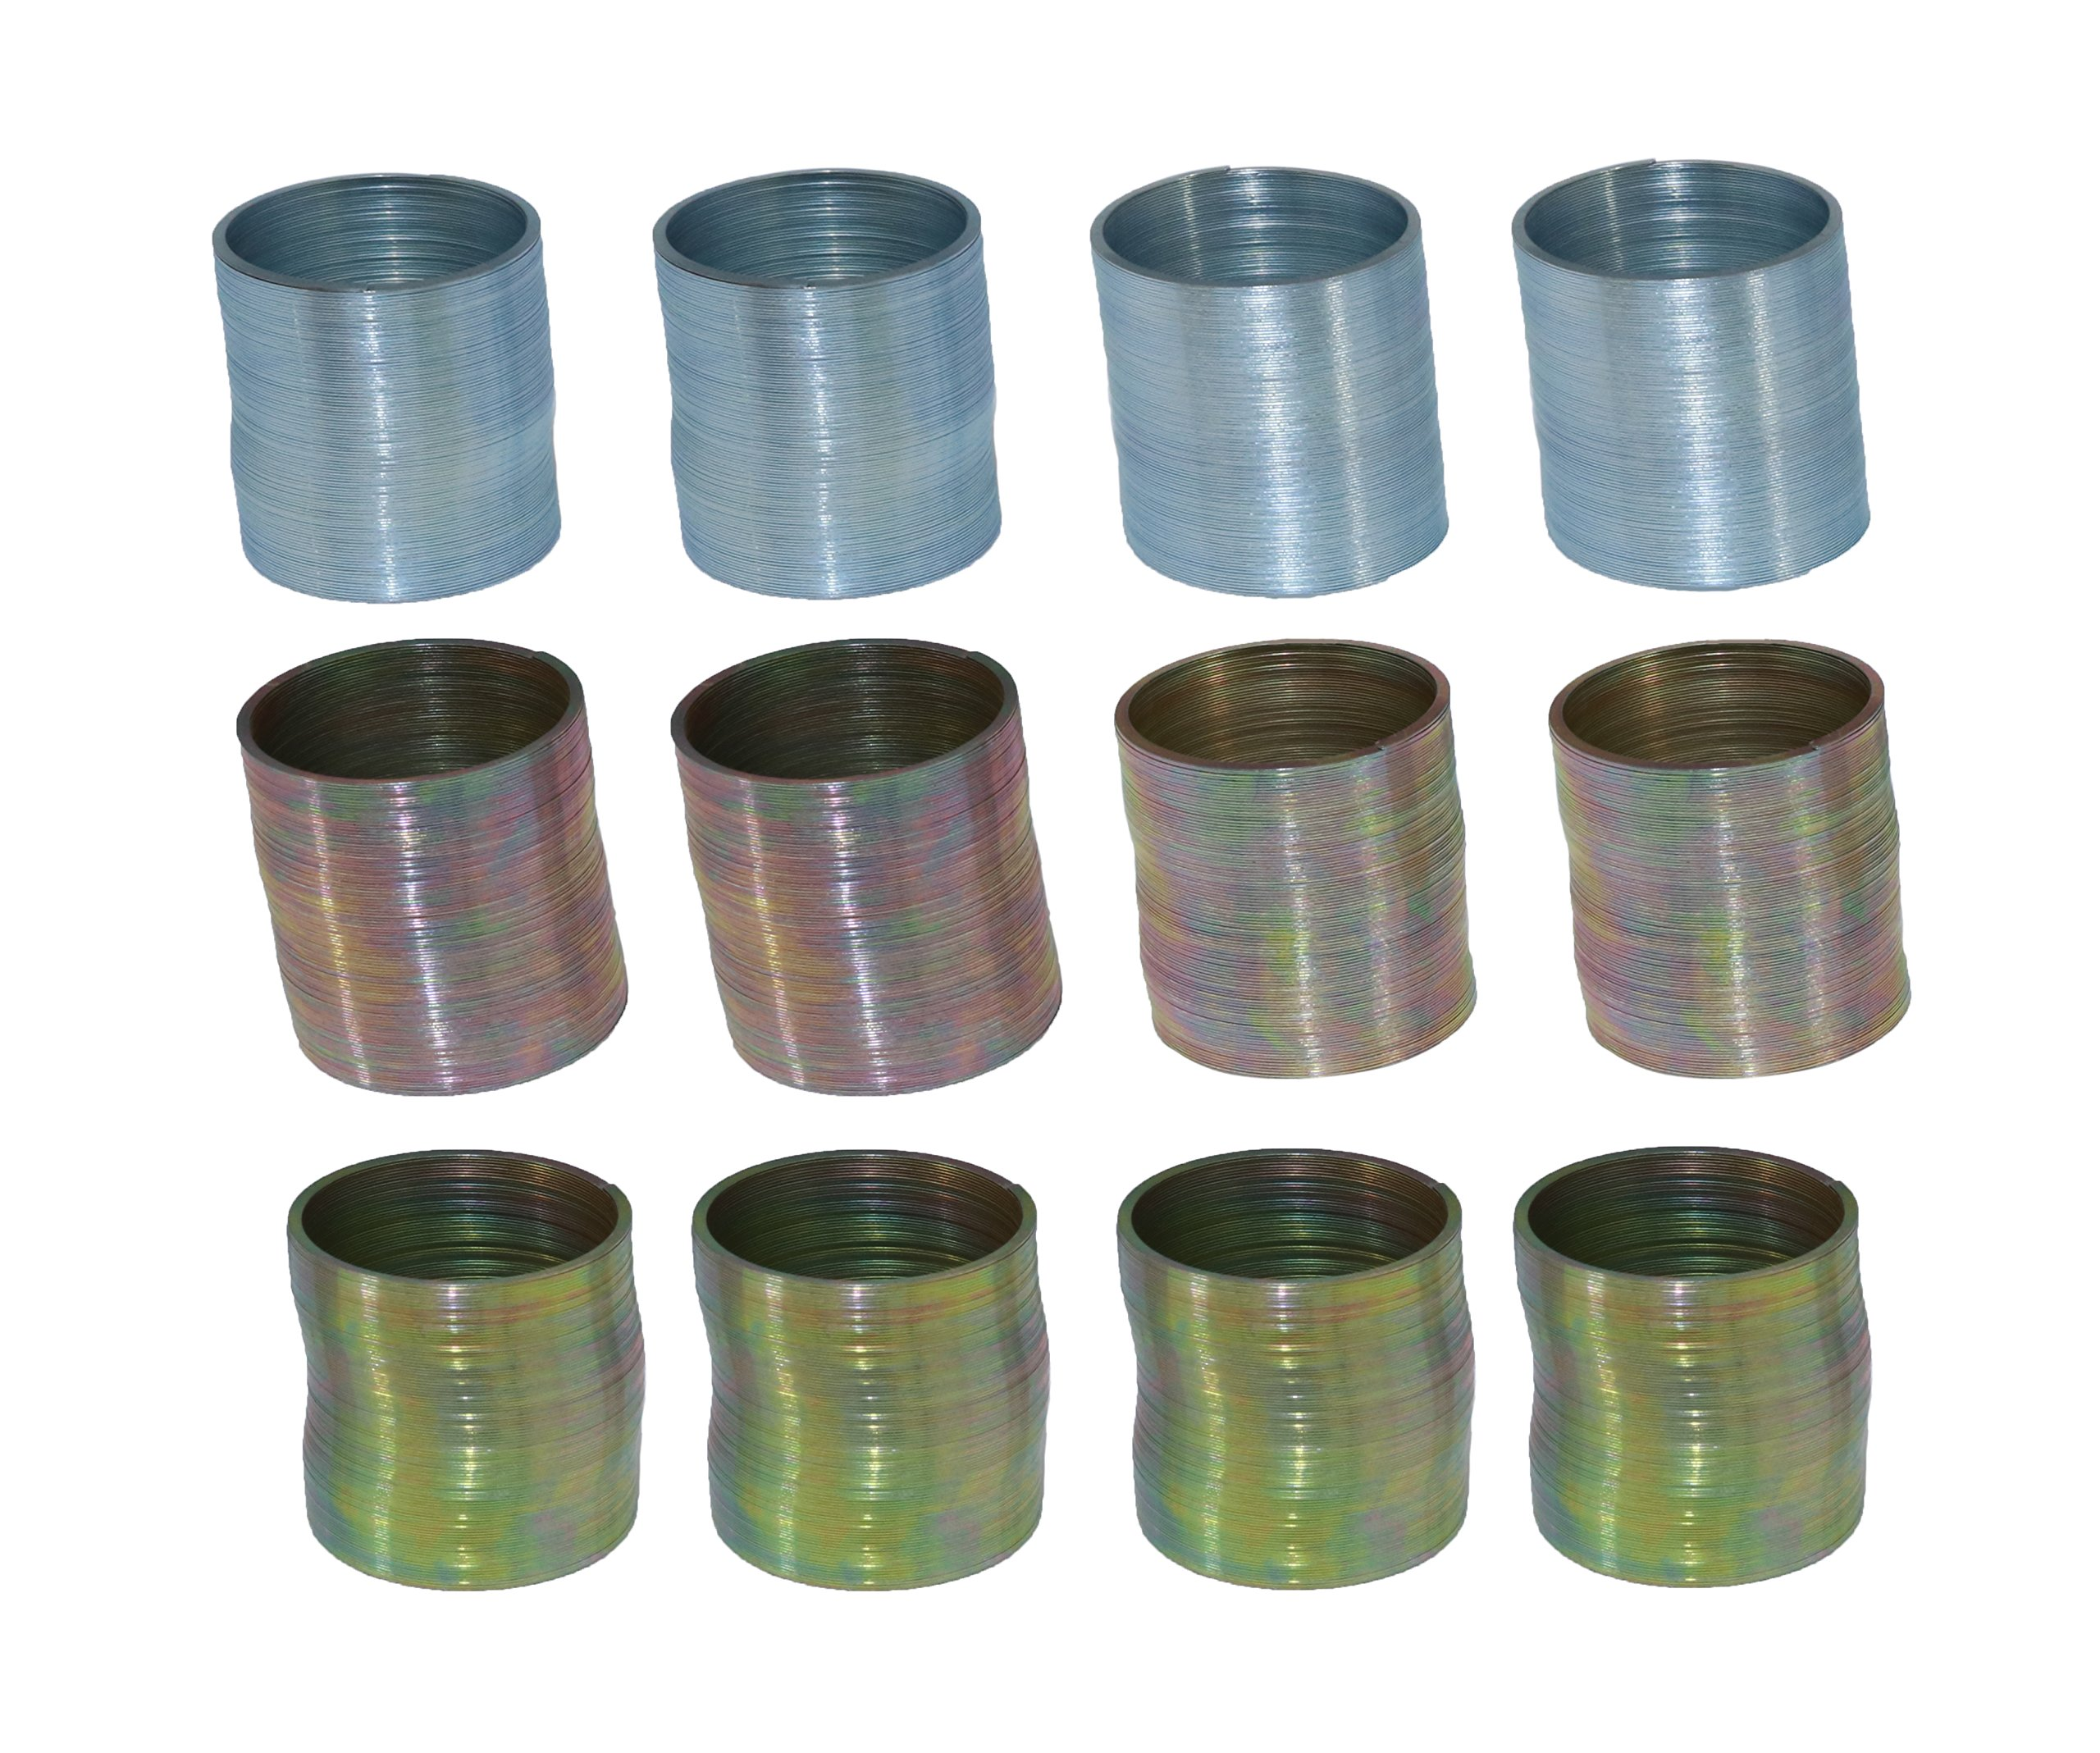 Mini Metal Coil Spring Toy - Pack Of 12 1 Inch Slinky Party Favors